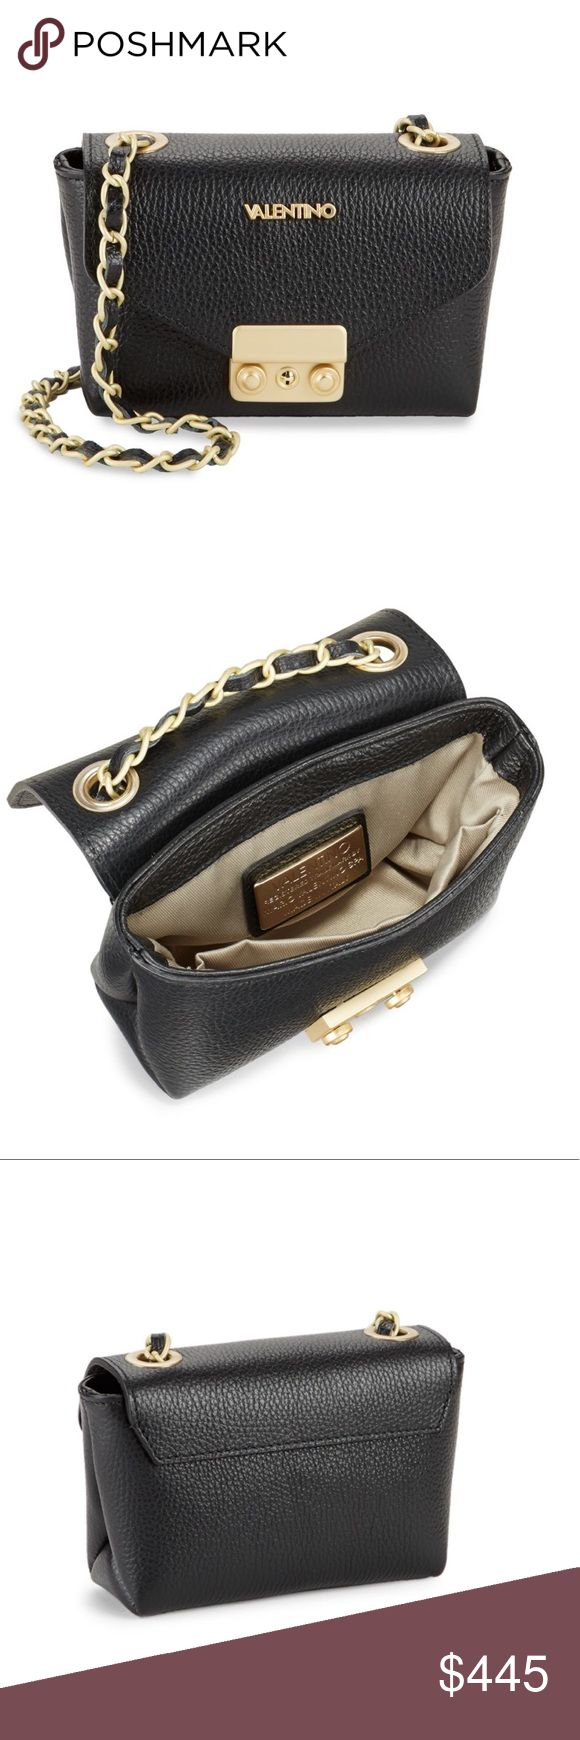 🔥SALE Valentino Leather &Gold Chain Crossbody Bag Valentino Black Leather & Gold Chain Crossbody Bag • Gorgeous Genuine Leather • Gold tone Hardware • Details and measurements in the last photo. Gorgeous bag! Brand new with tags & authenticity card. Mario Valentino Bags Crossbody Bags